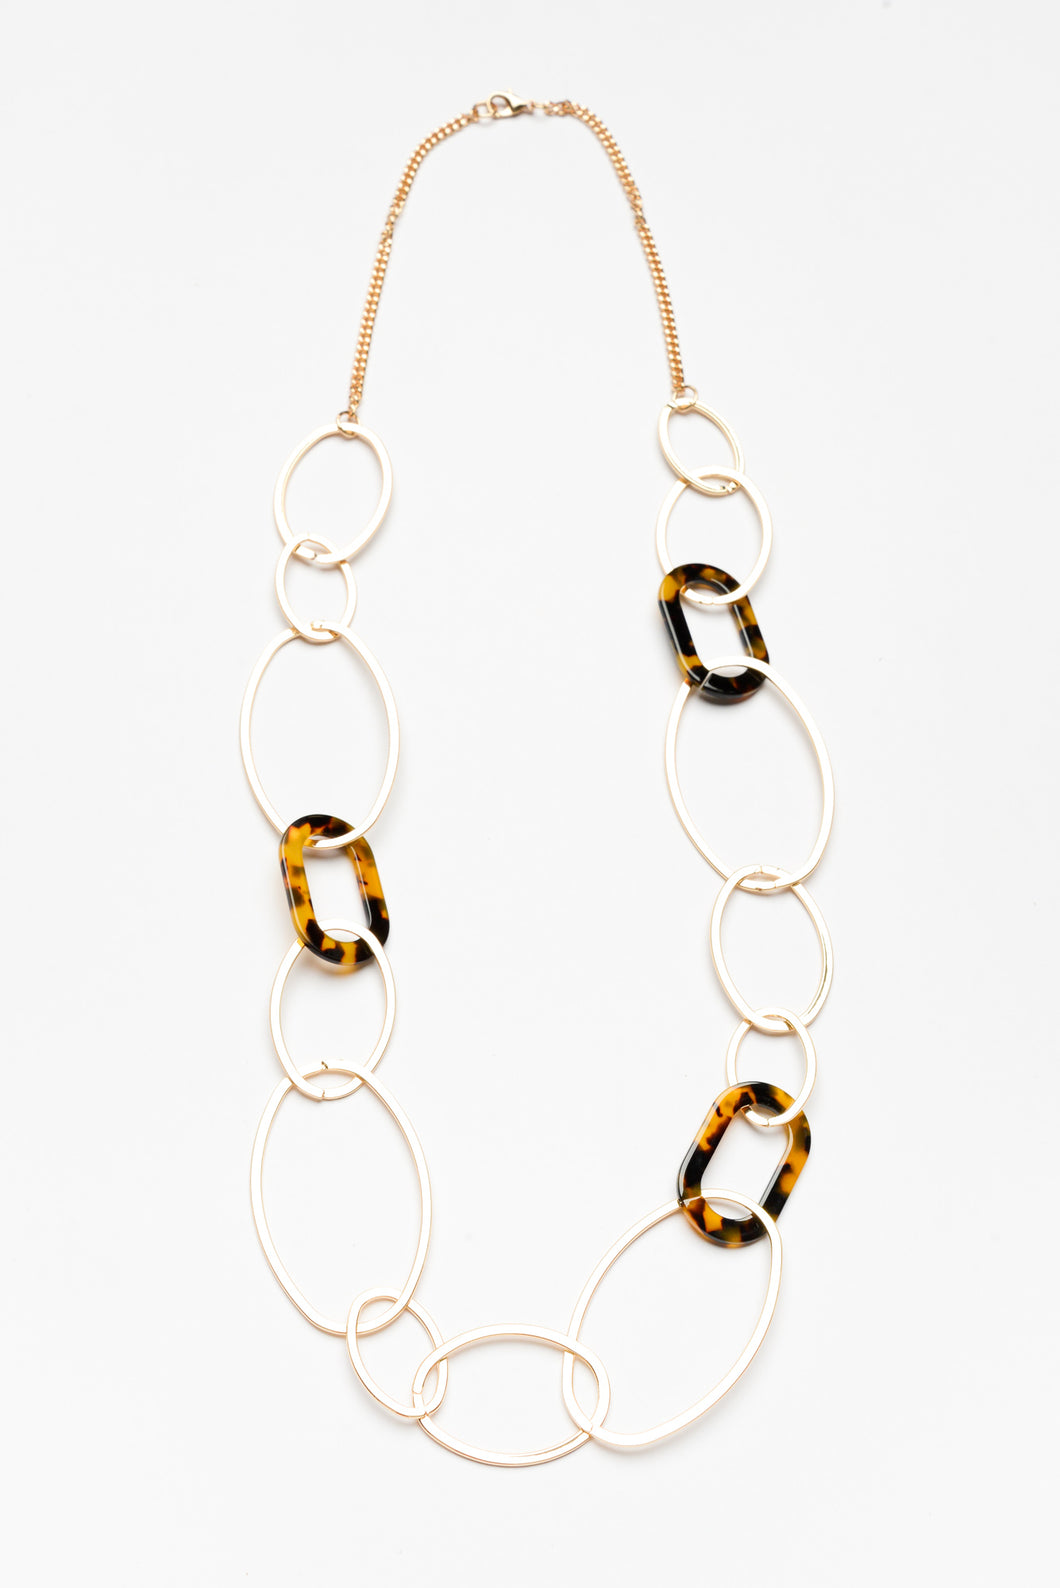 Gold and Tortoise Link Necklace - Blue Bungalow